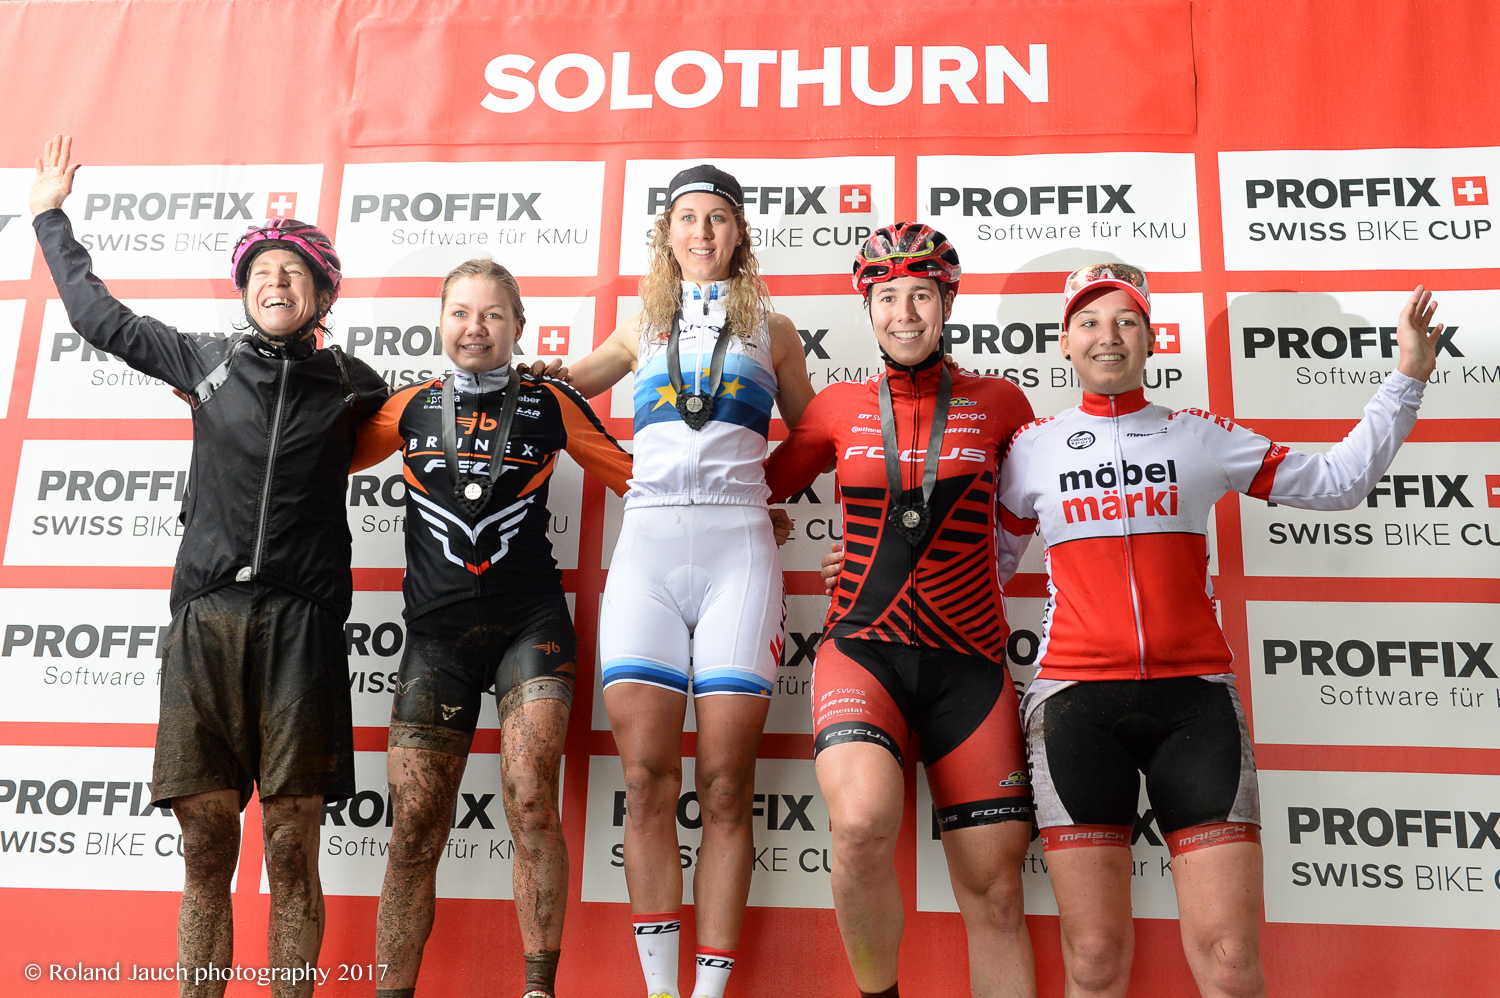 Swiss Bike Cup Solothurn 2017 (Foto: Roland Jauch, 06.05.4.2017)